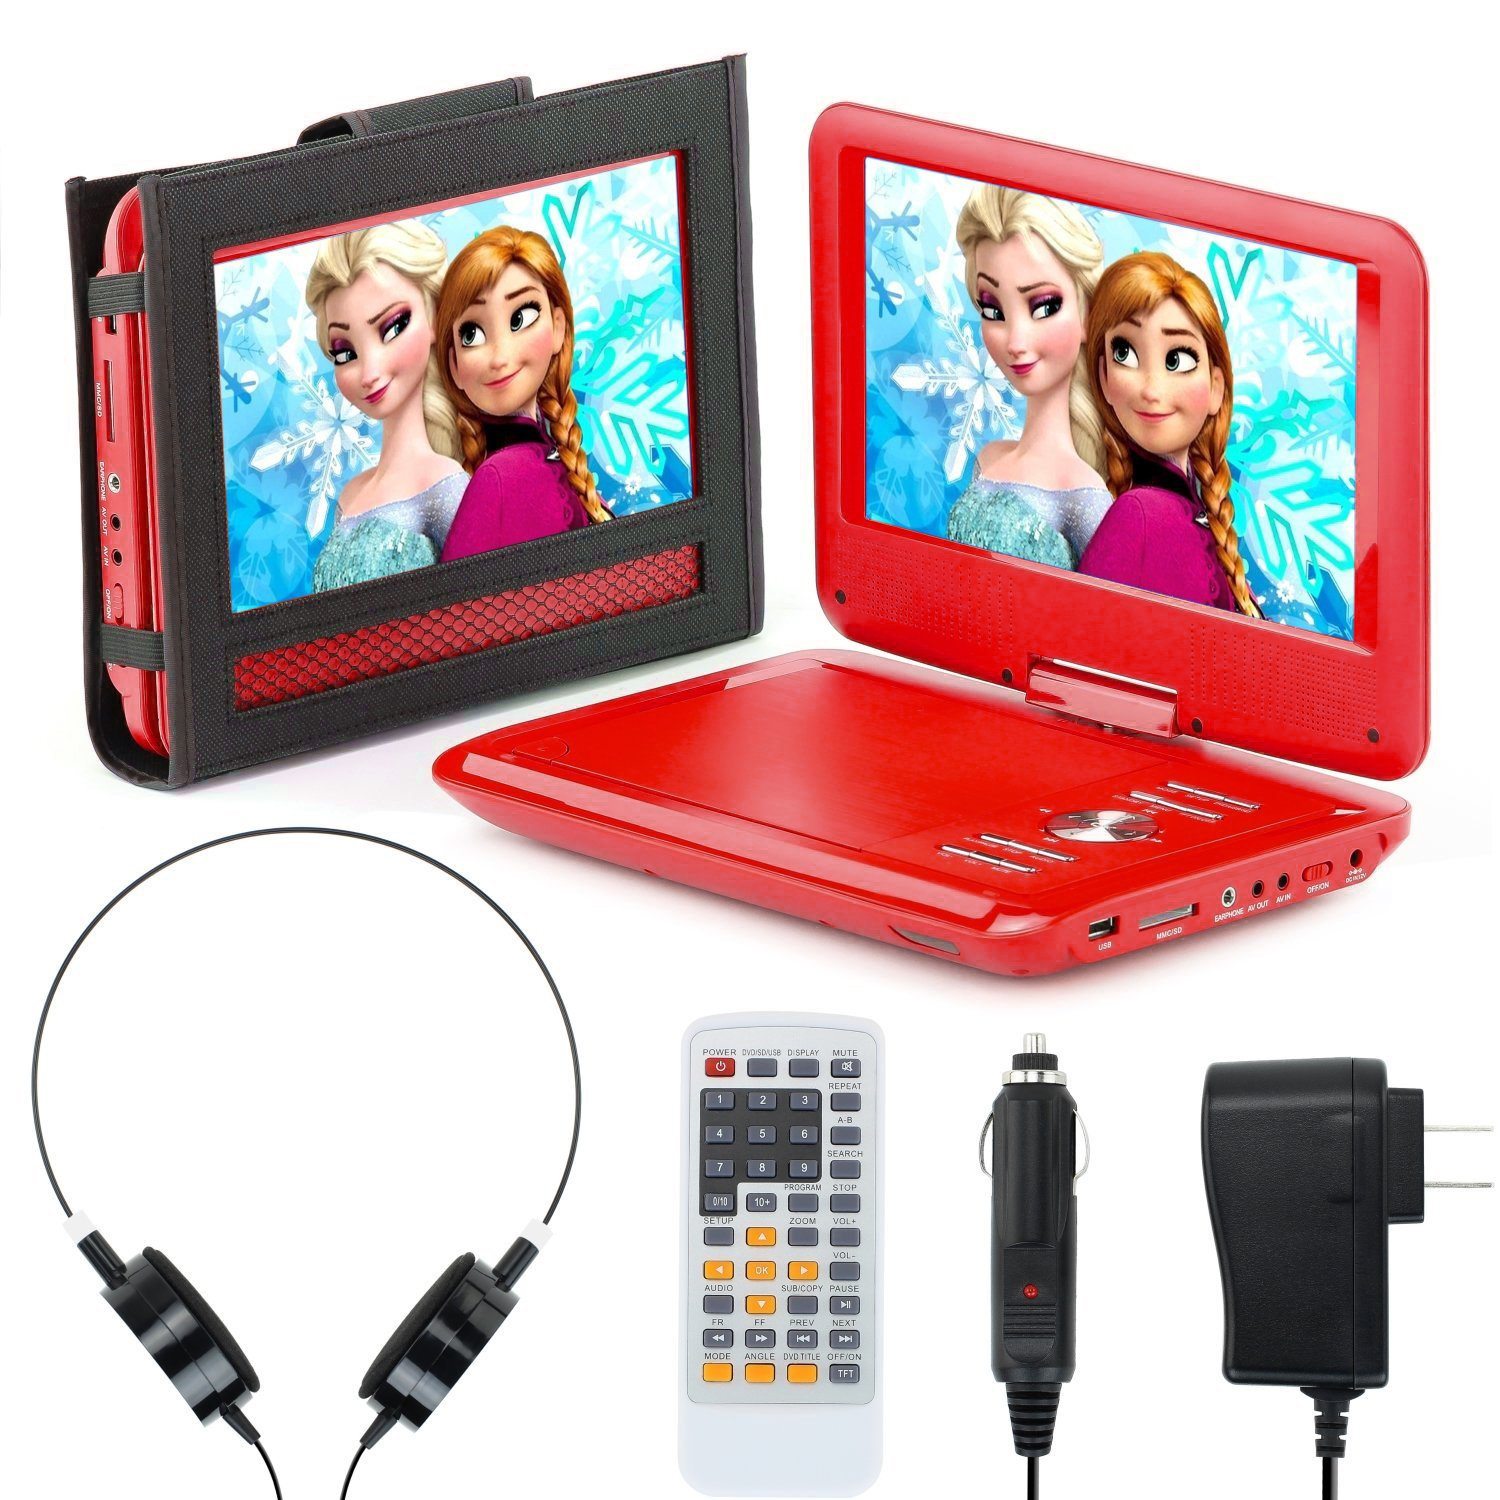 Portable DVD Player for Car, Plane & more - 7 Car & Travel Accessories Included ($35 Value) - 9'' Swivel Screen - Whopping 6 Hour Battery Life - Perfect Portable DVD Player for Kids - Red by eXuby